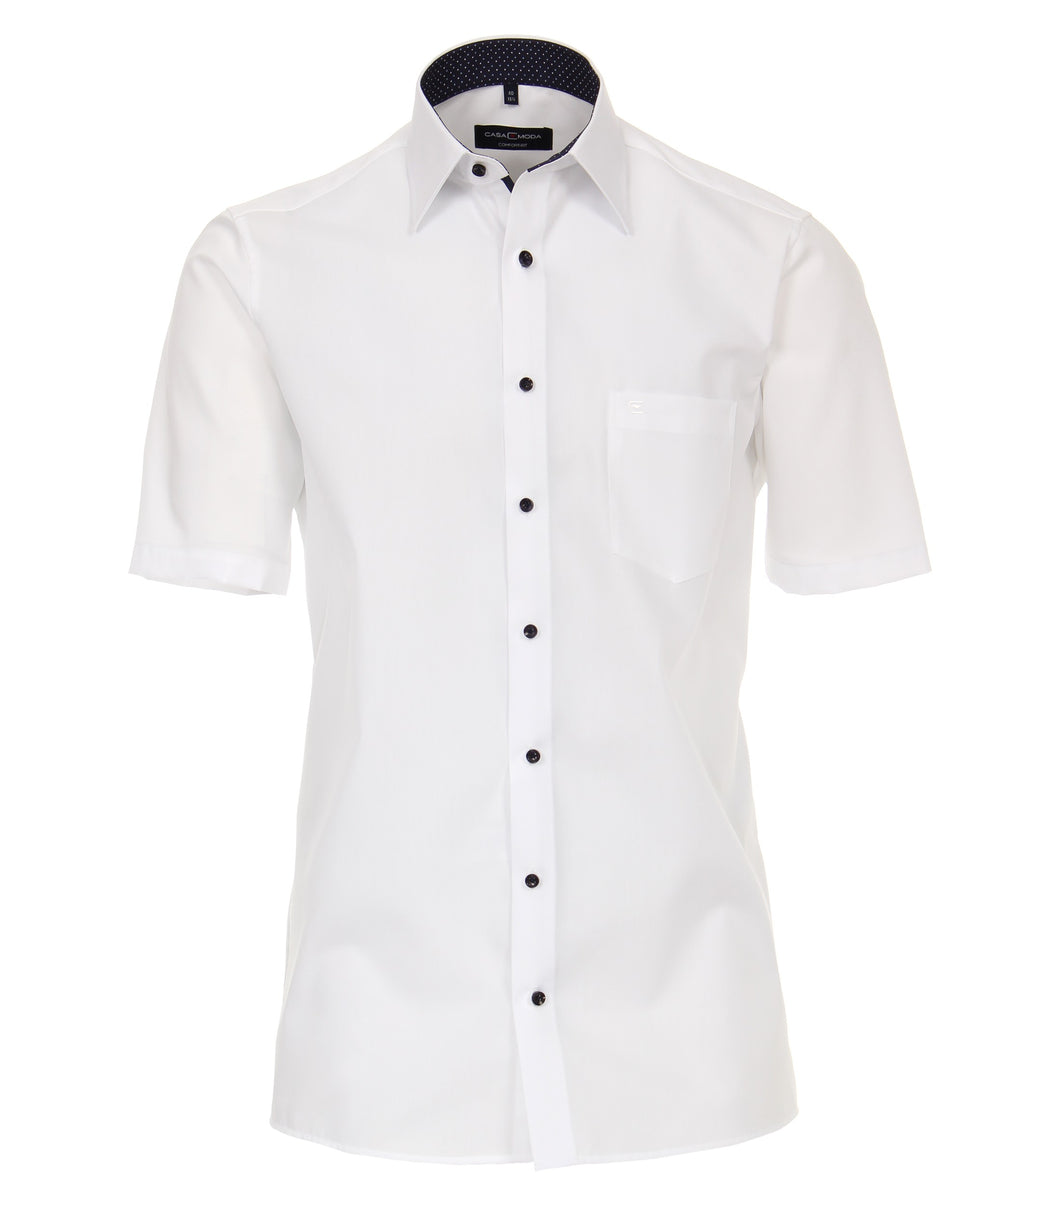 Casa moda short sleeve shirt comfort fit